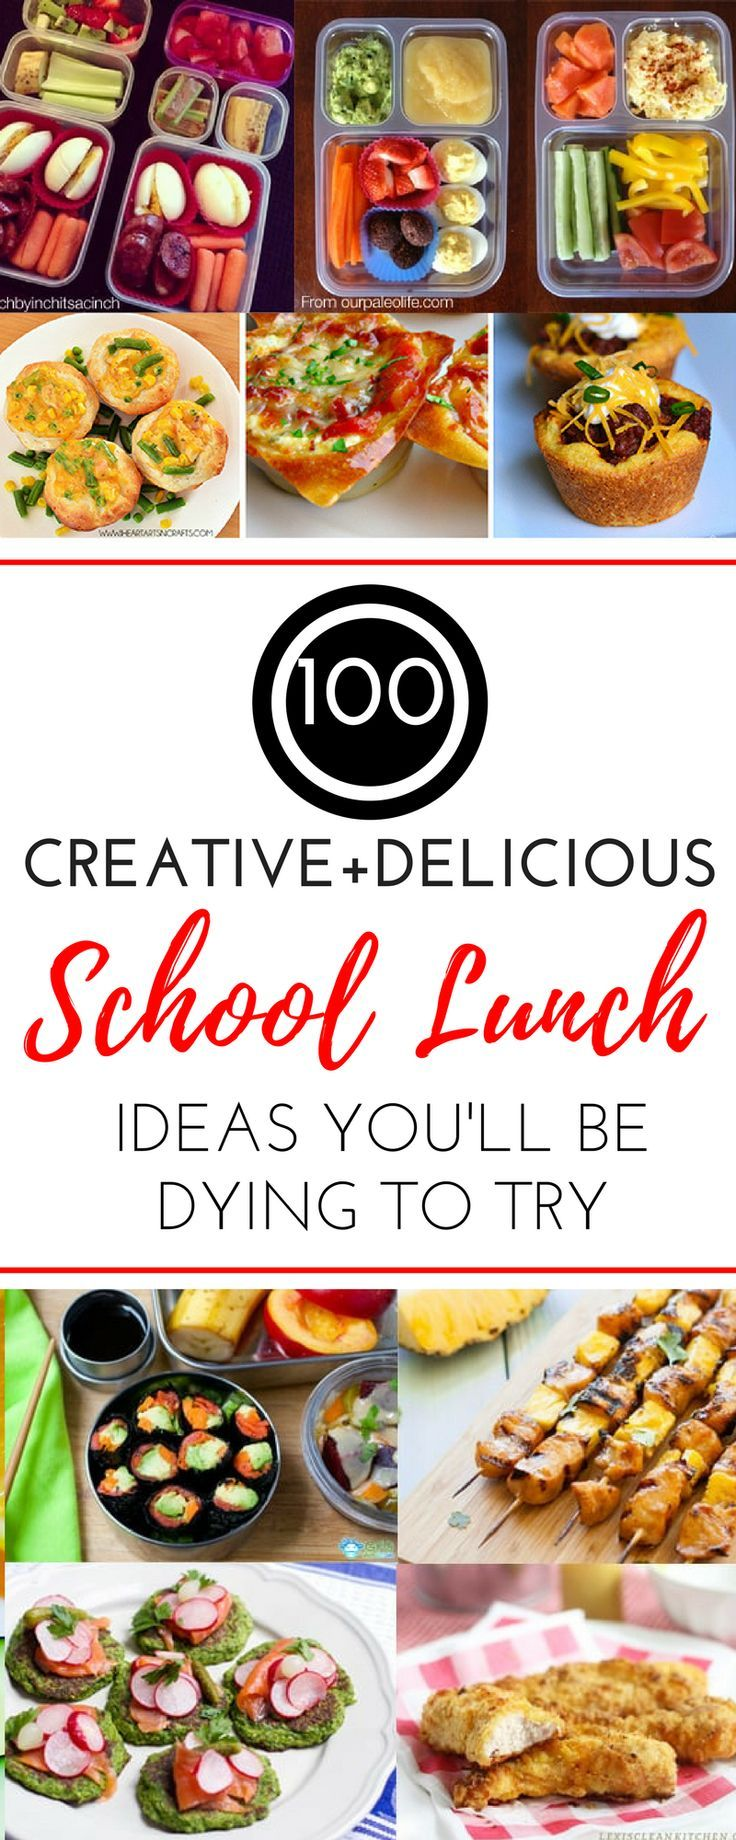 creative cold school lunch box ideas for picky eaters | dishing it